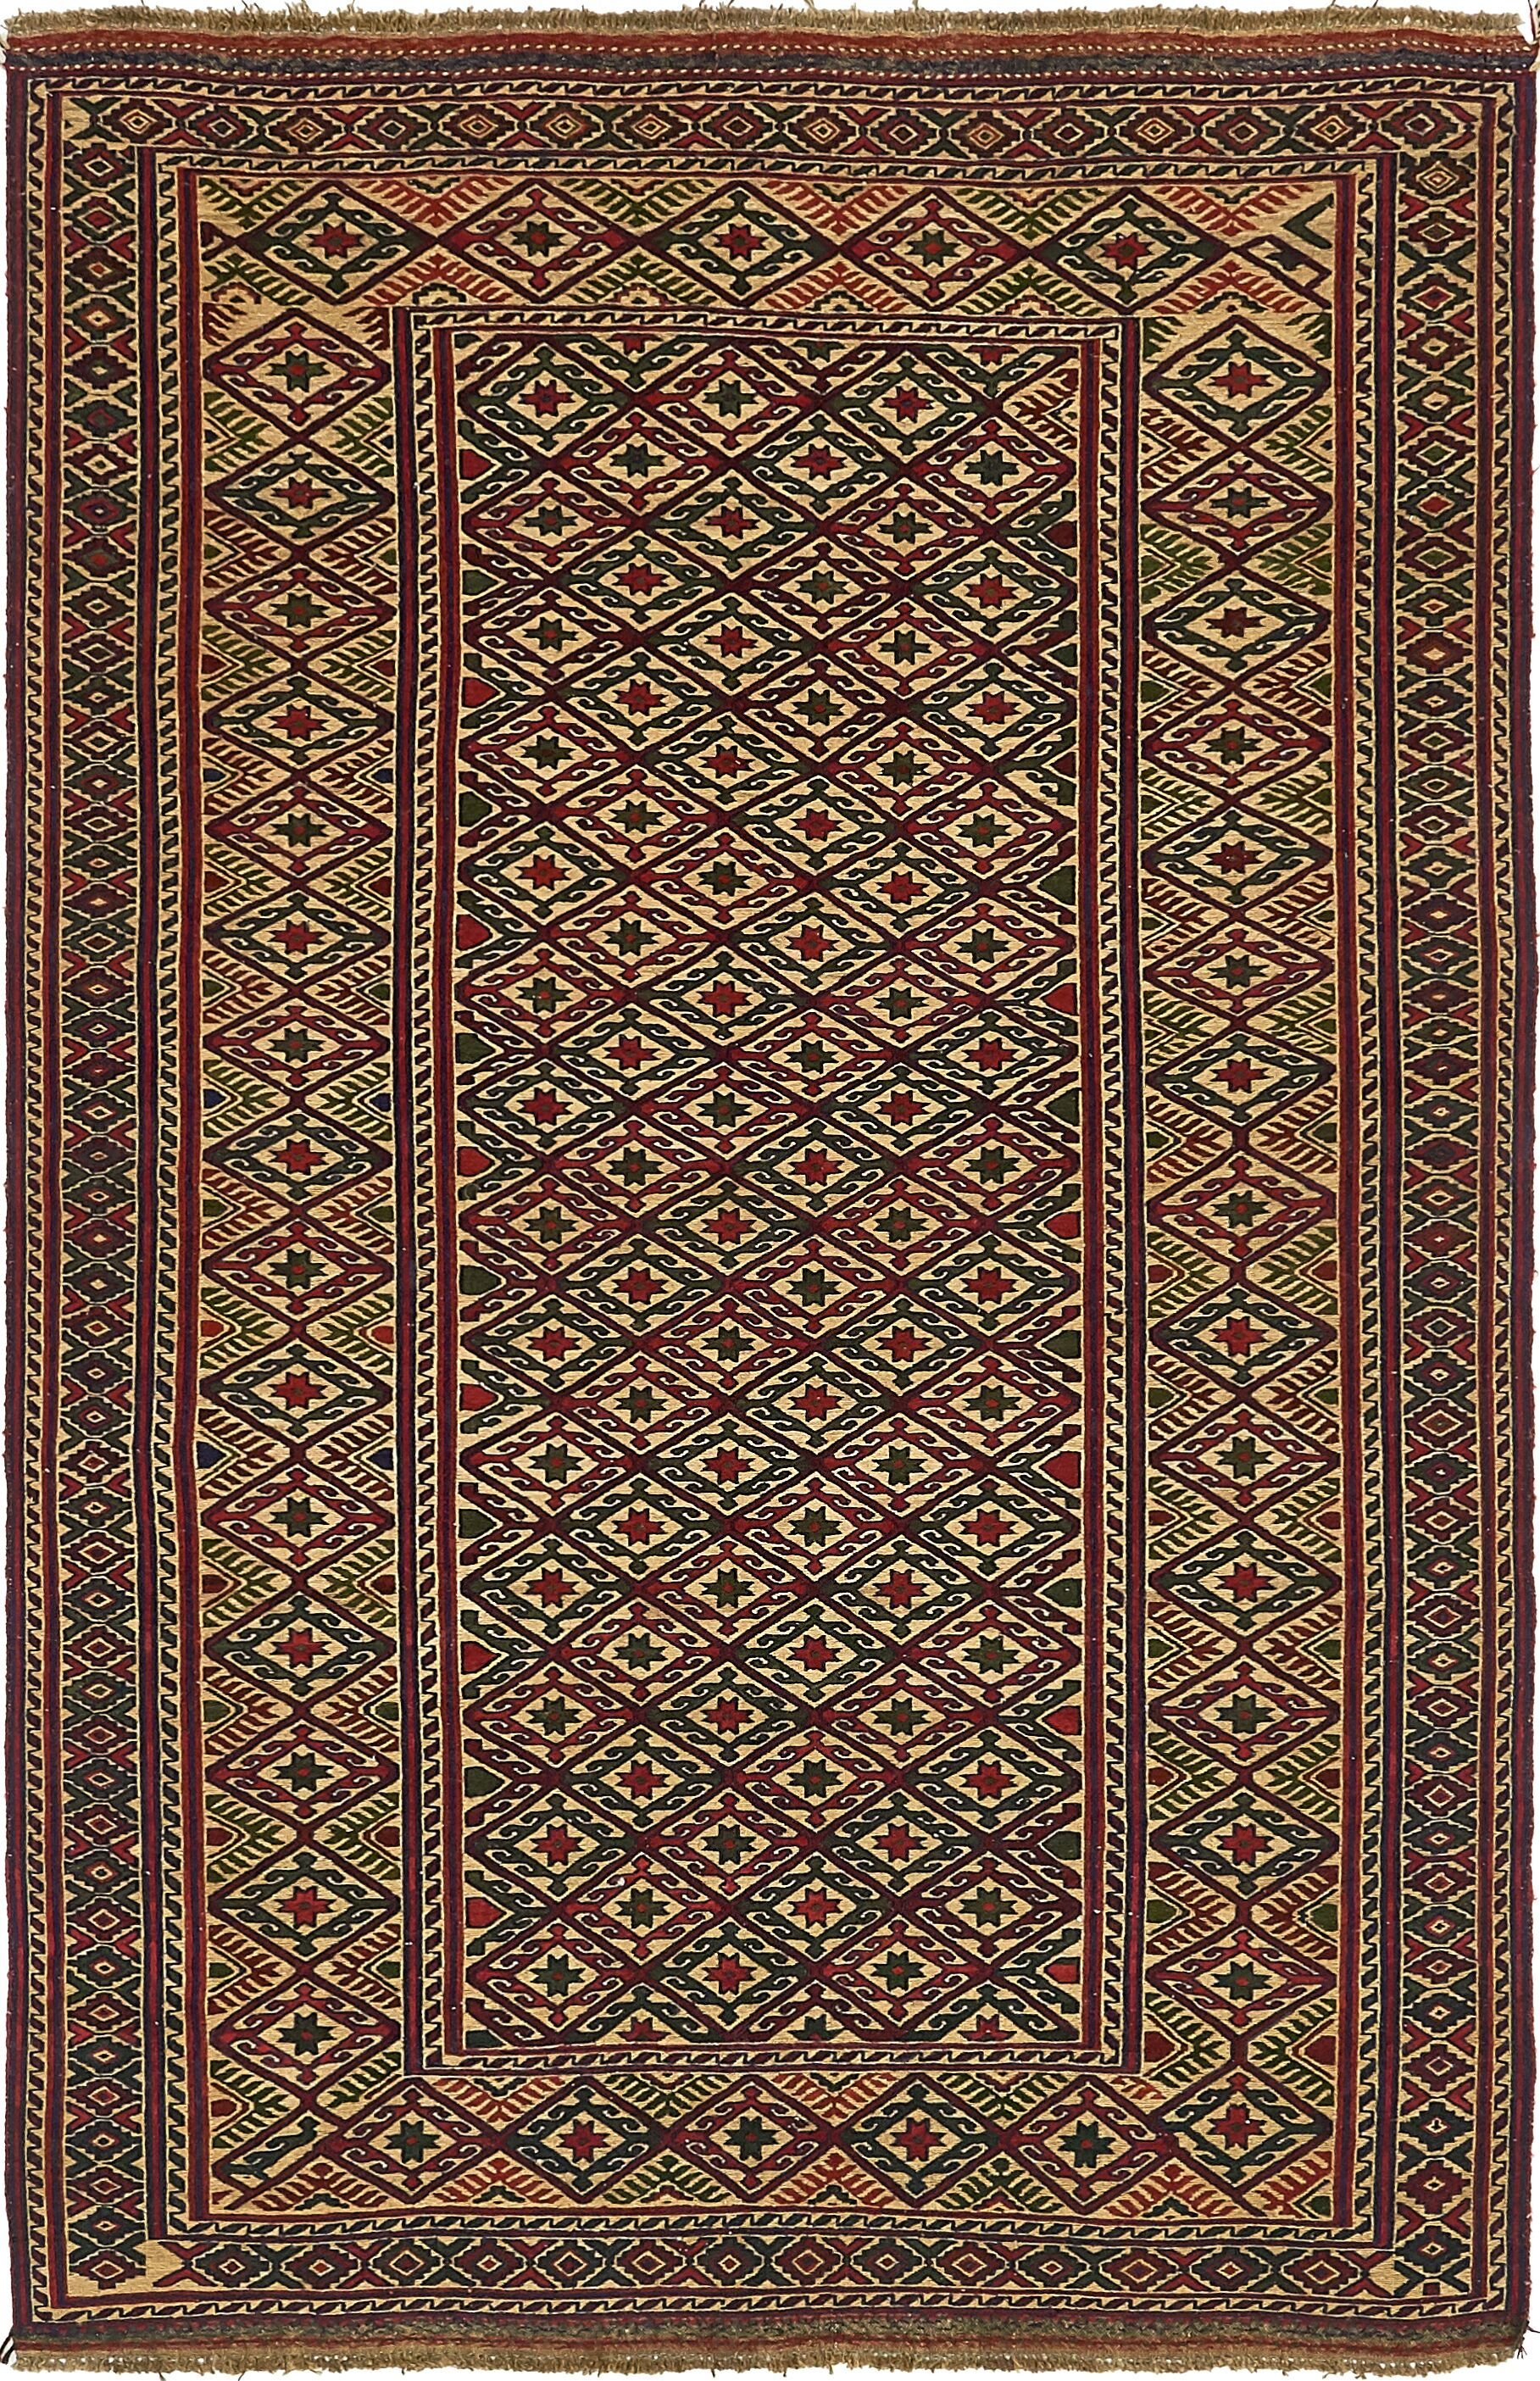 One-of-a-Kind Earley Hand-Knotted Wool Red/Green Area Rug